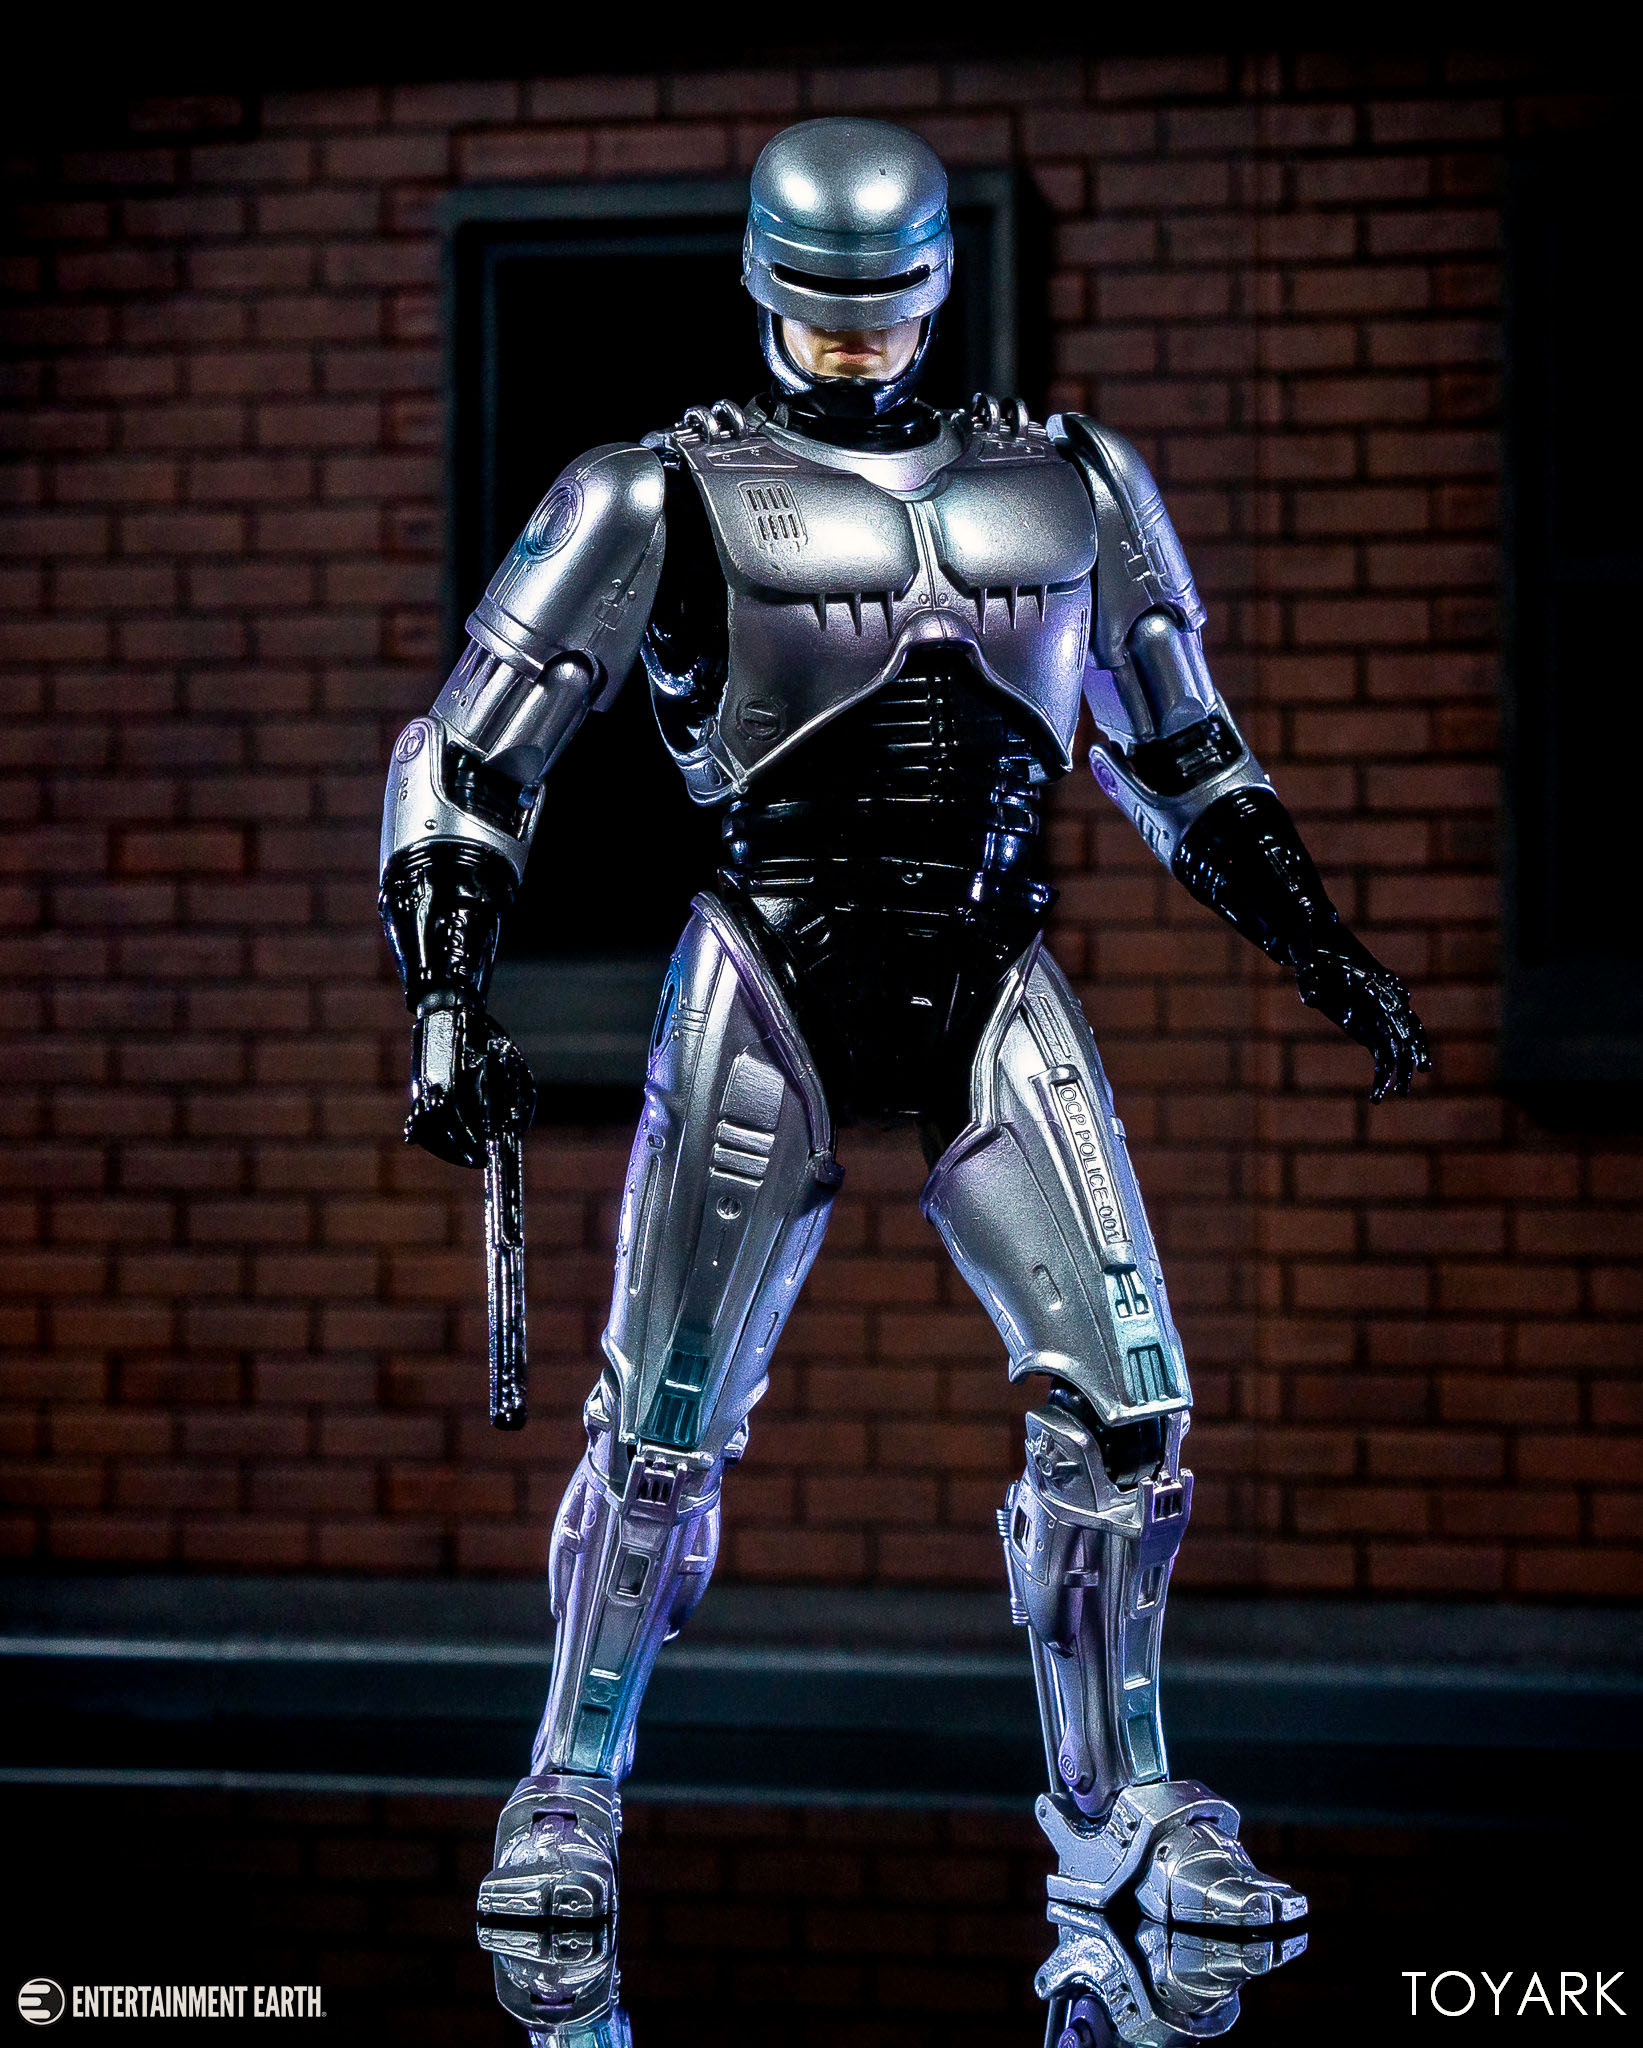 https://news.toyark.com/wp-content/uploads/sites/4/2019/03/MAFEX-Robocop-Gallery-004.jpg